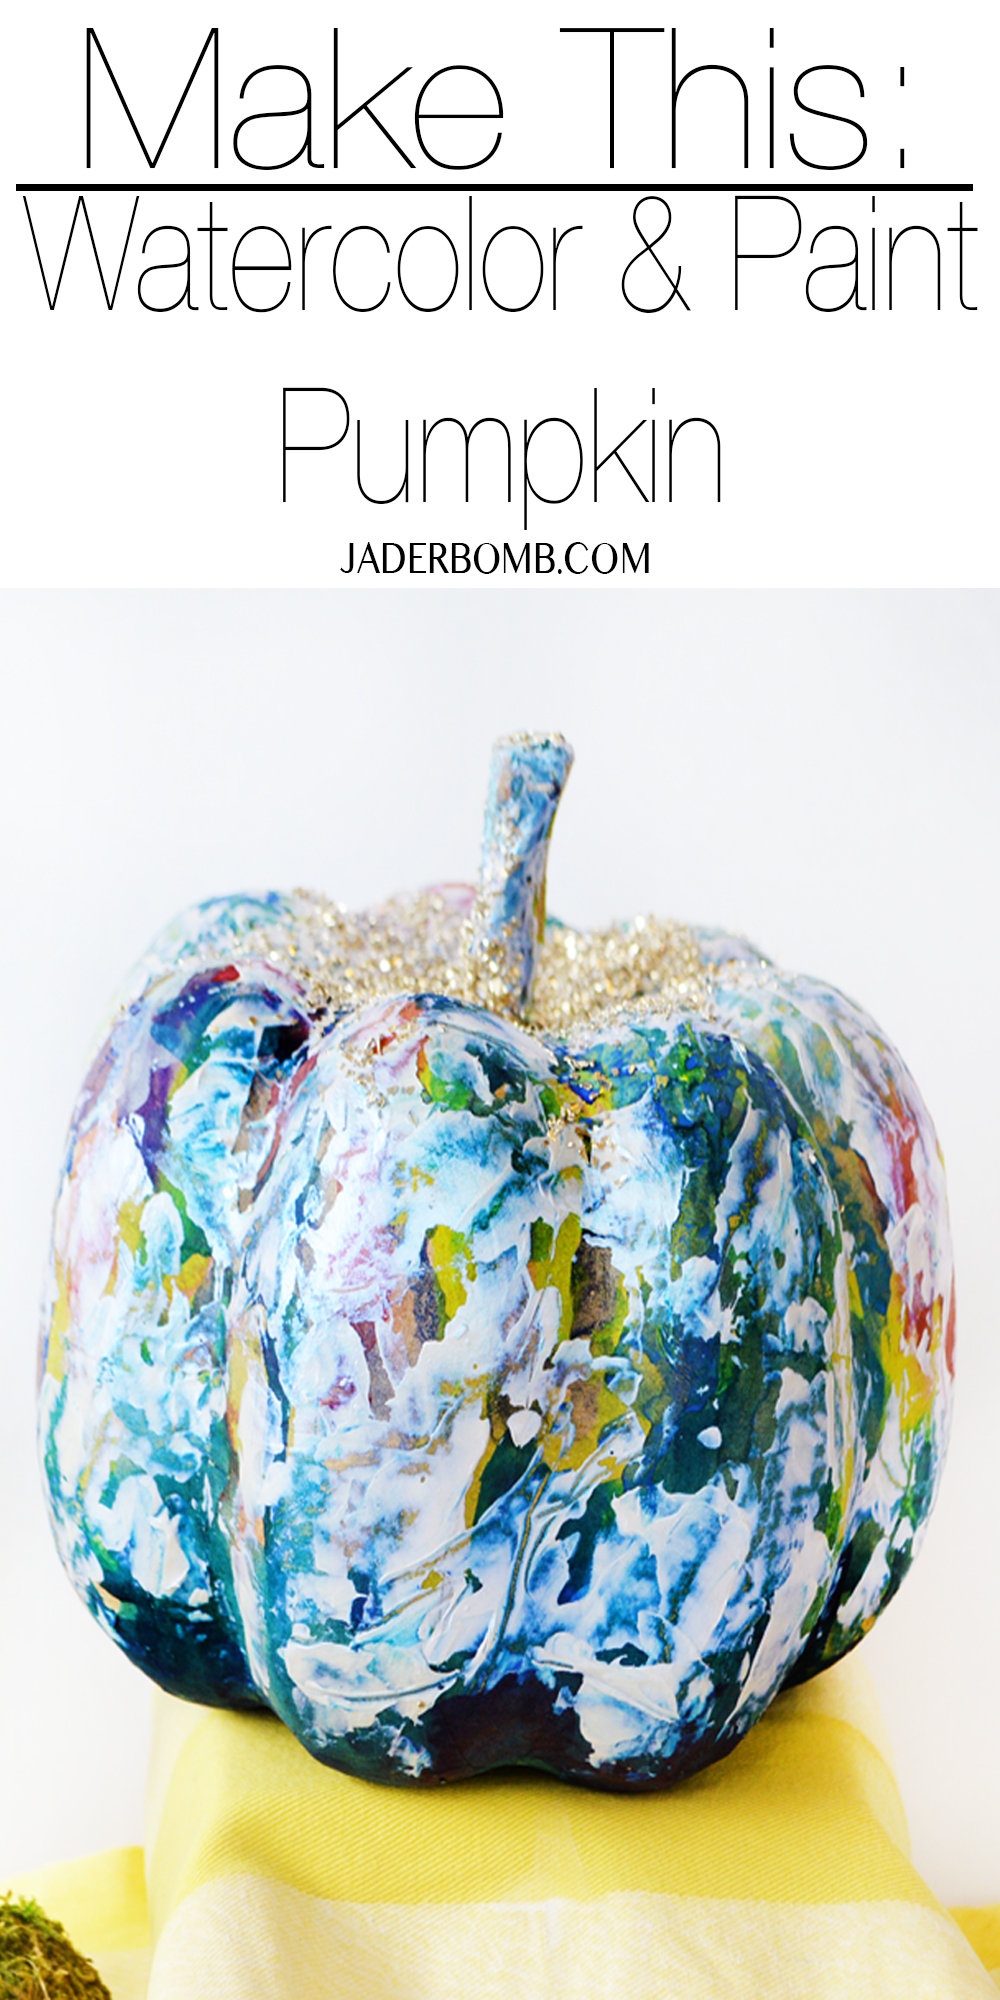 Watercolor and Paint Pumpkin